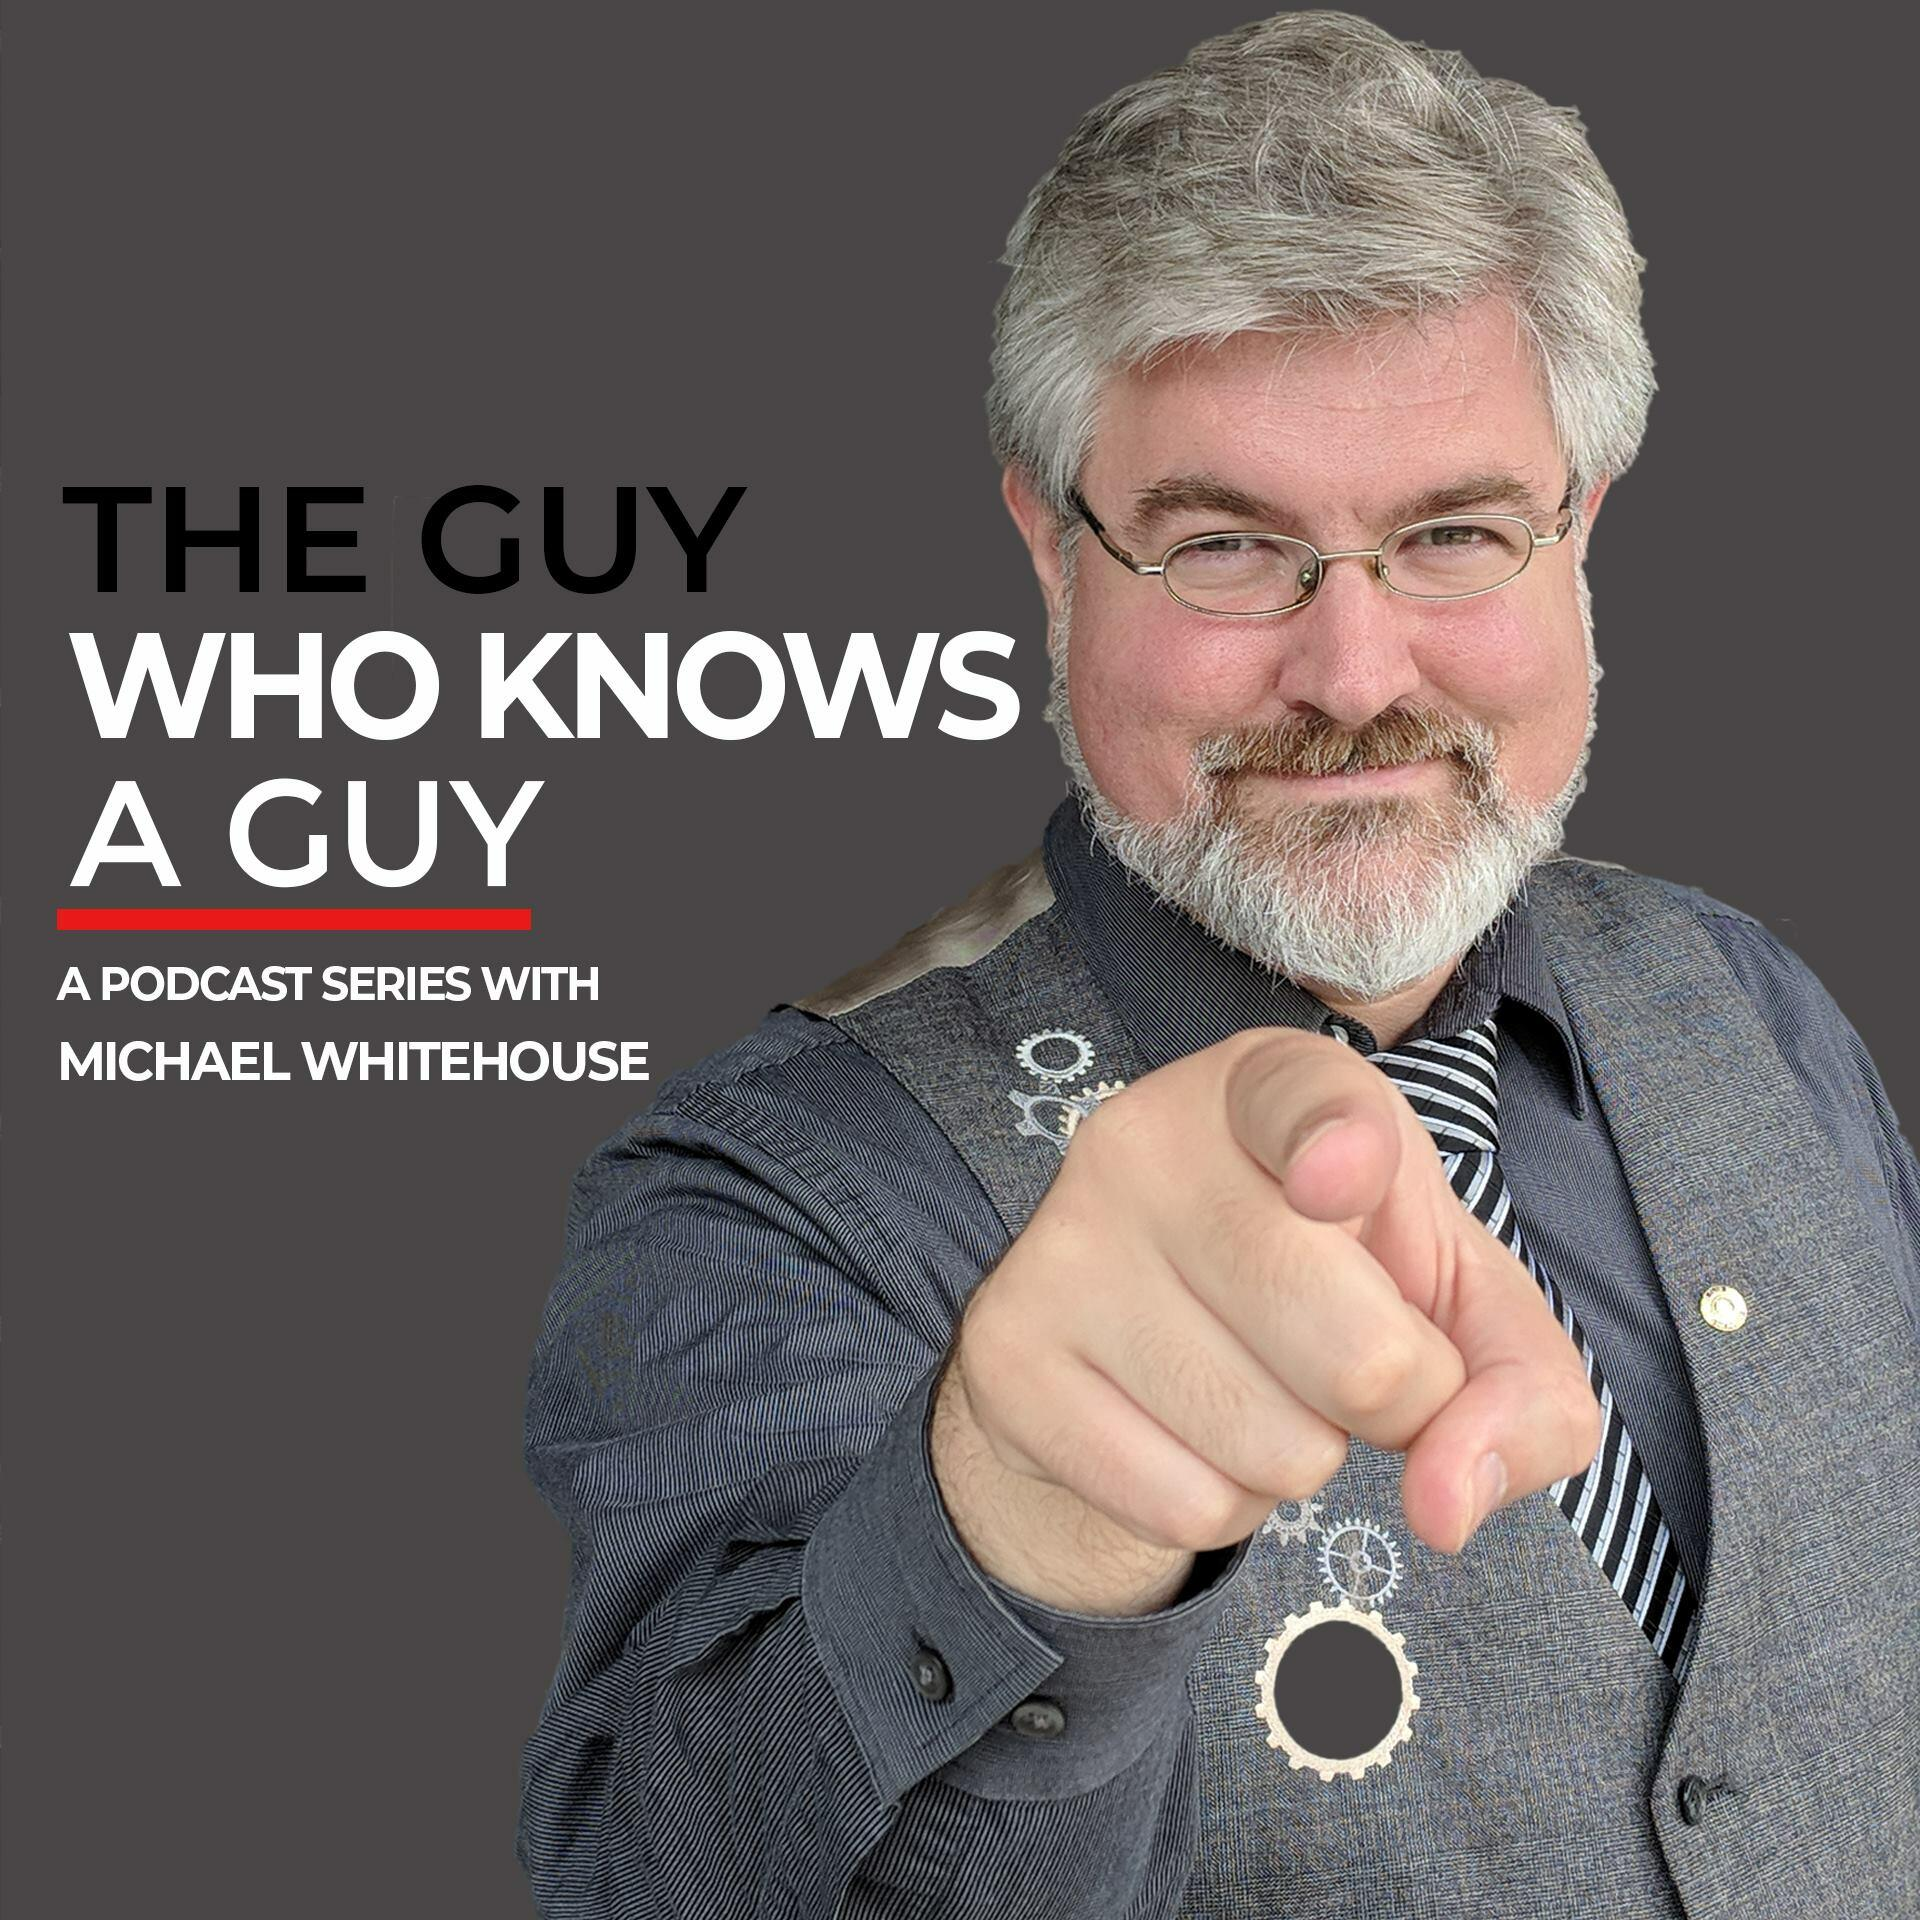 The Guy Who Knows A Guy Podcast